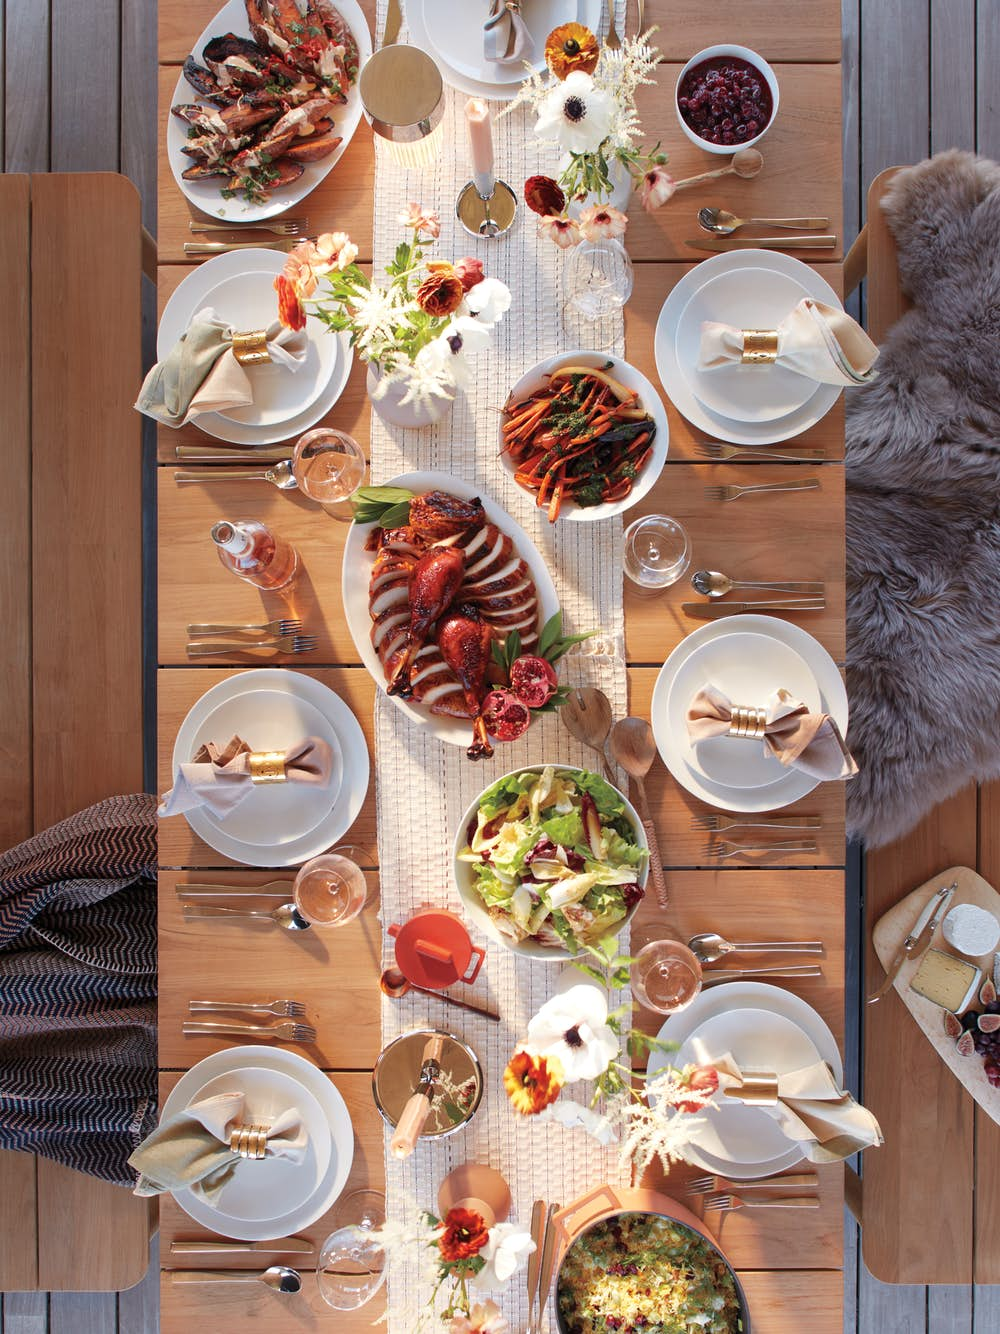 Terassi Dining Table with Thanksgiving dinner setup overhead